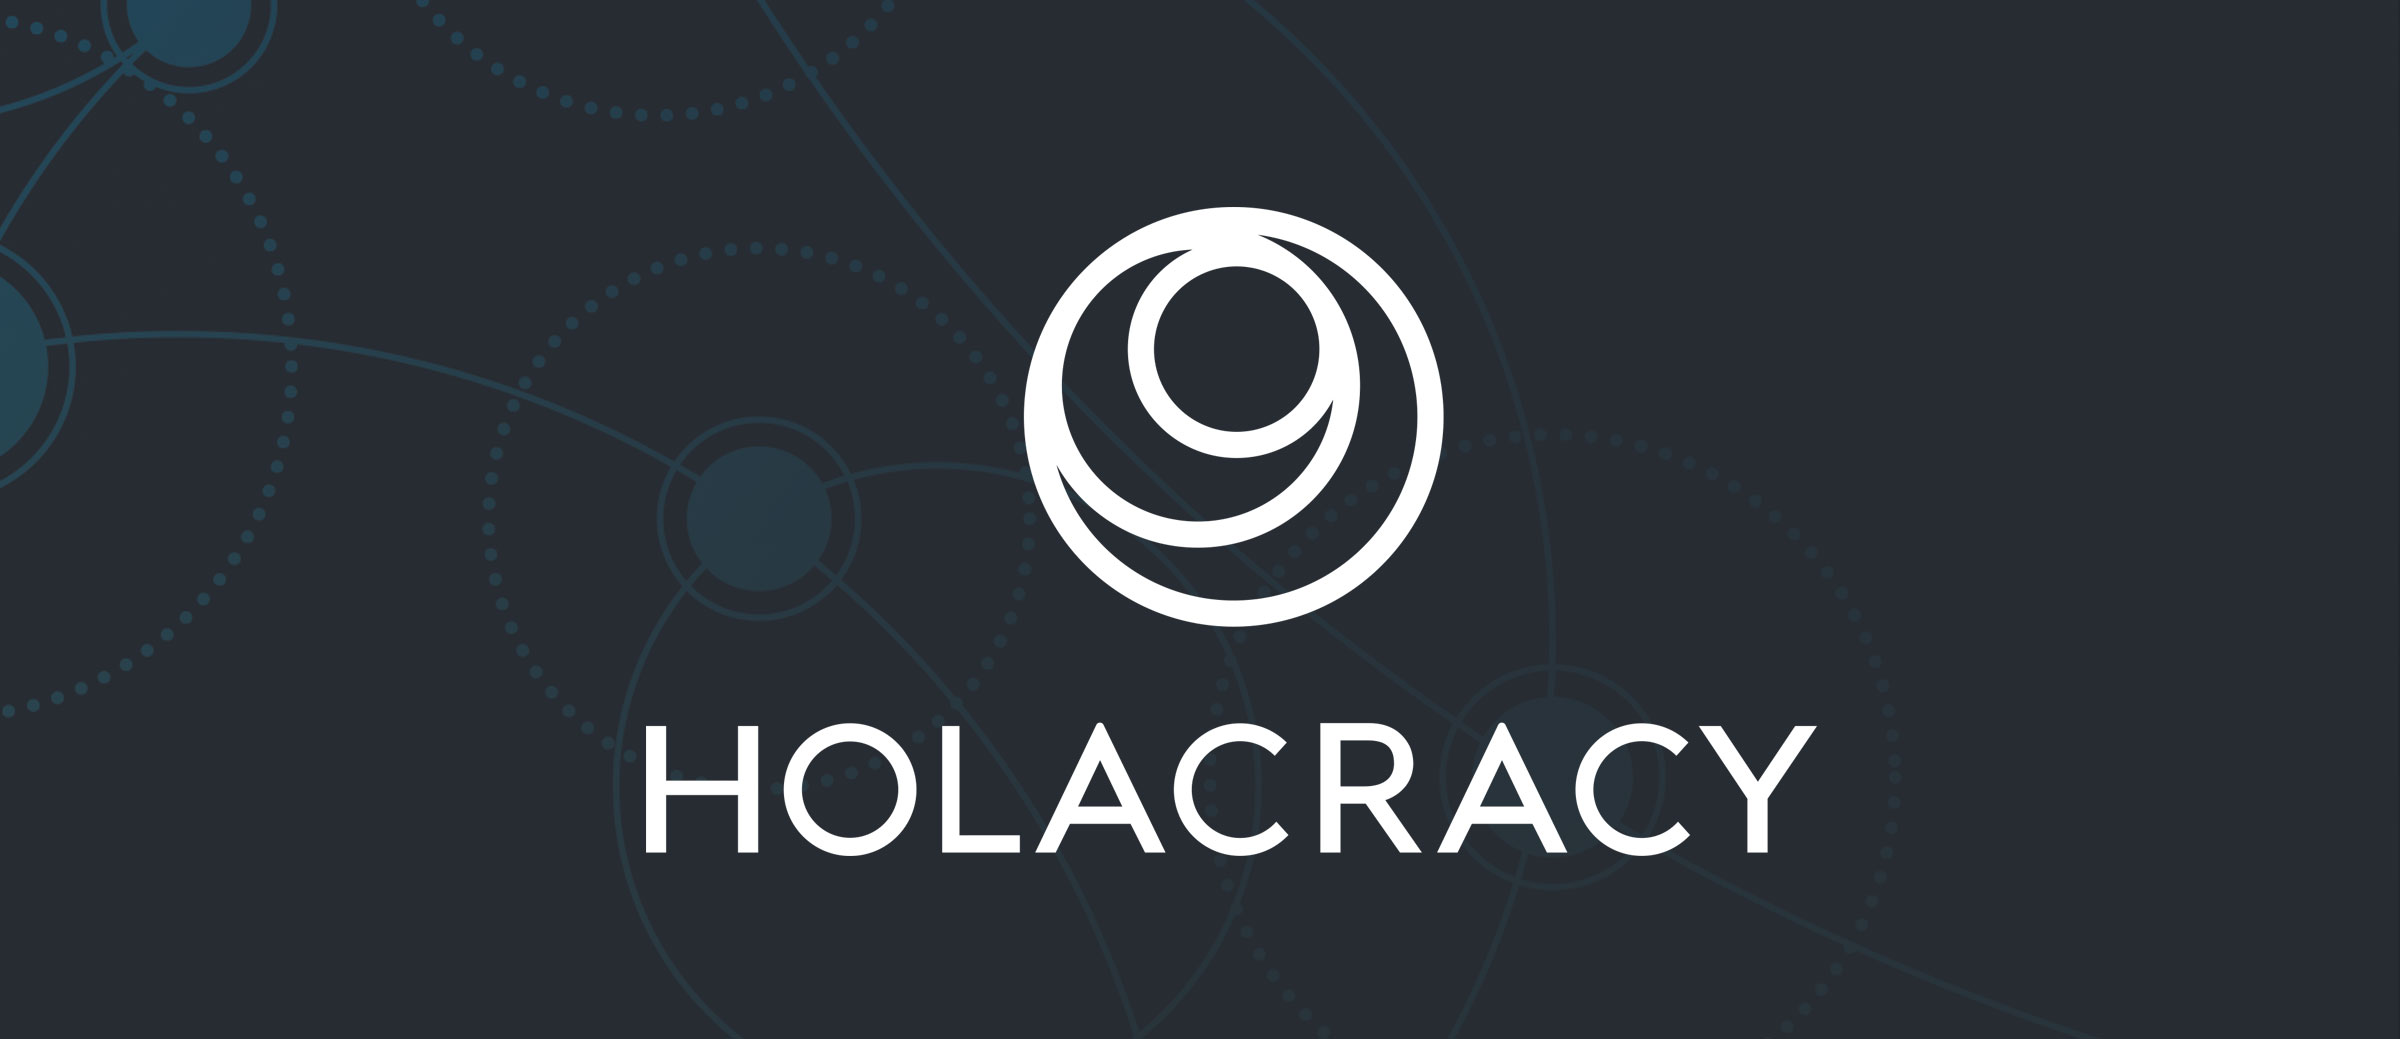 holacracy-constitution-banner